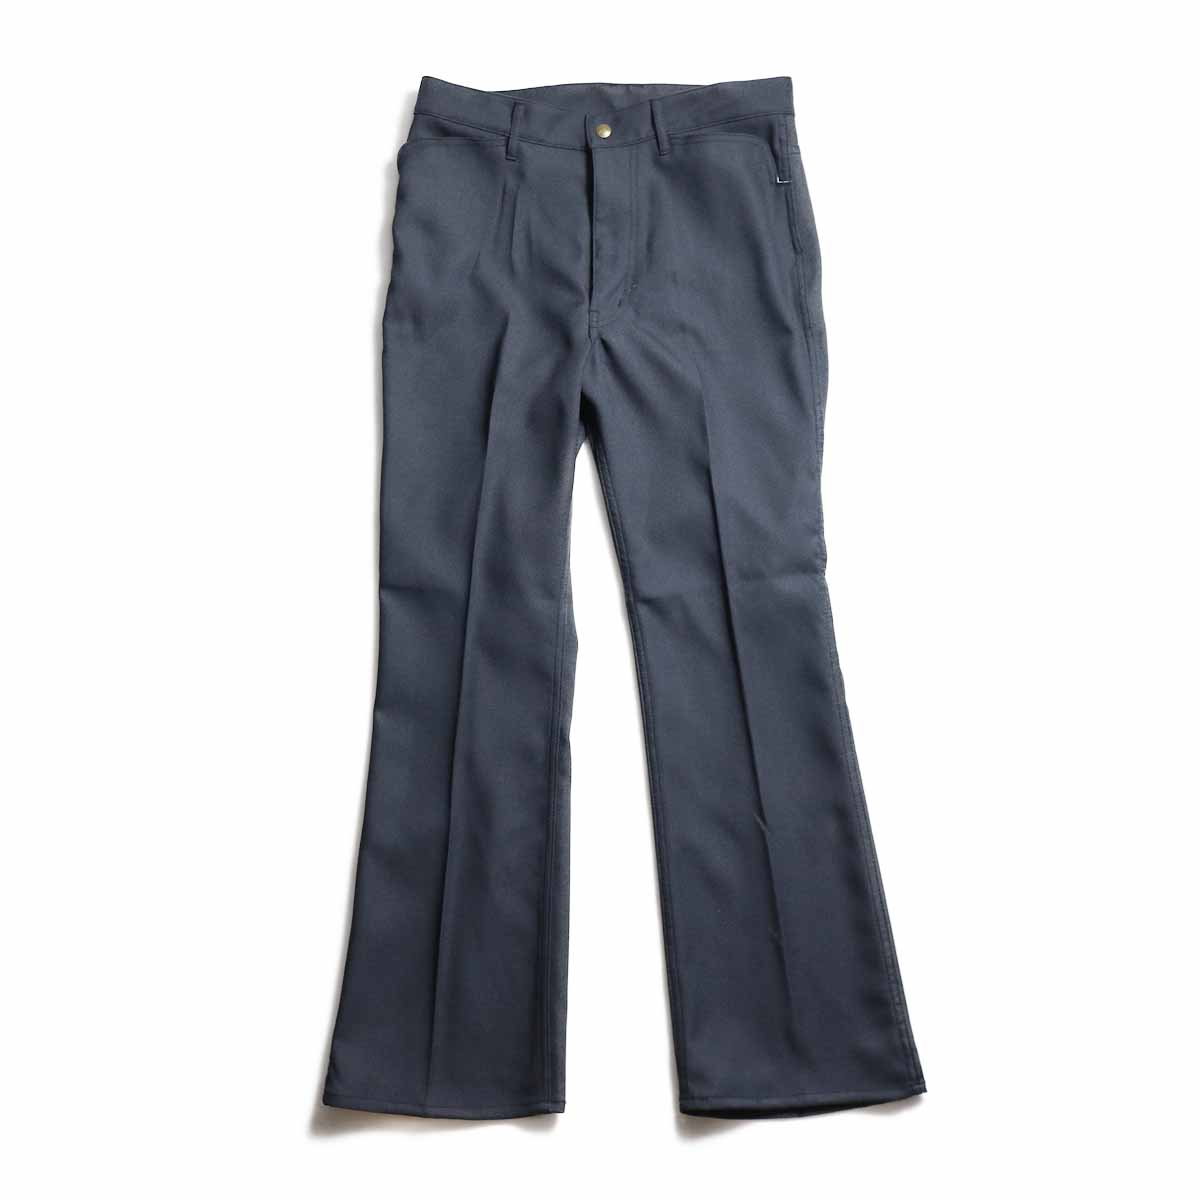 NEEDLES / Boot Cut Jean -Poly Twill (Charcoal)